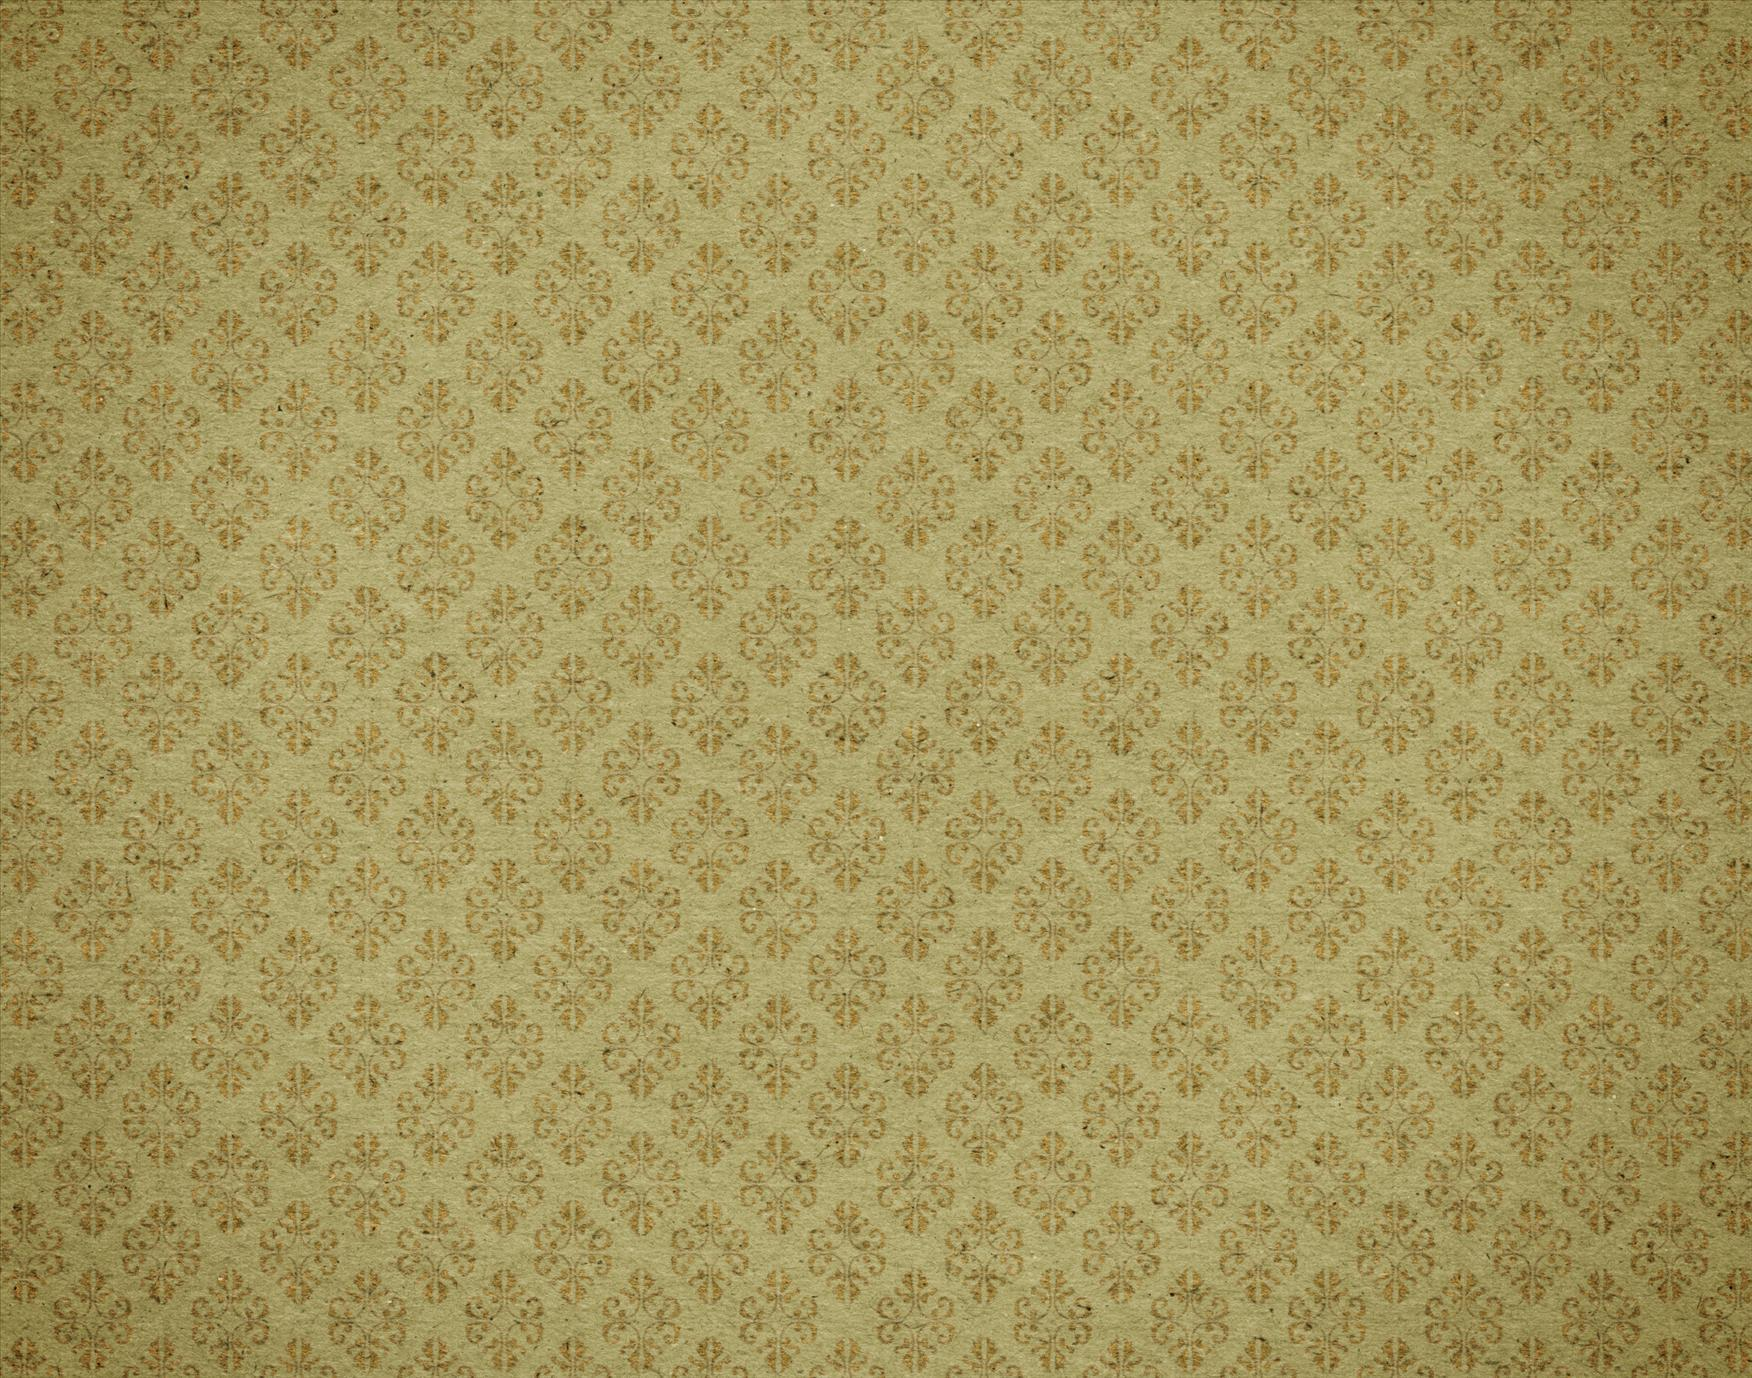 Vintage wallpaper backgrounds wallpaper cave for Retro wallpaper